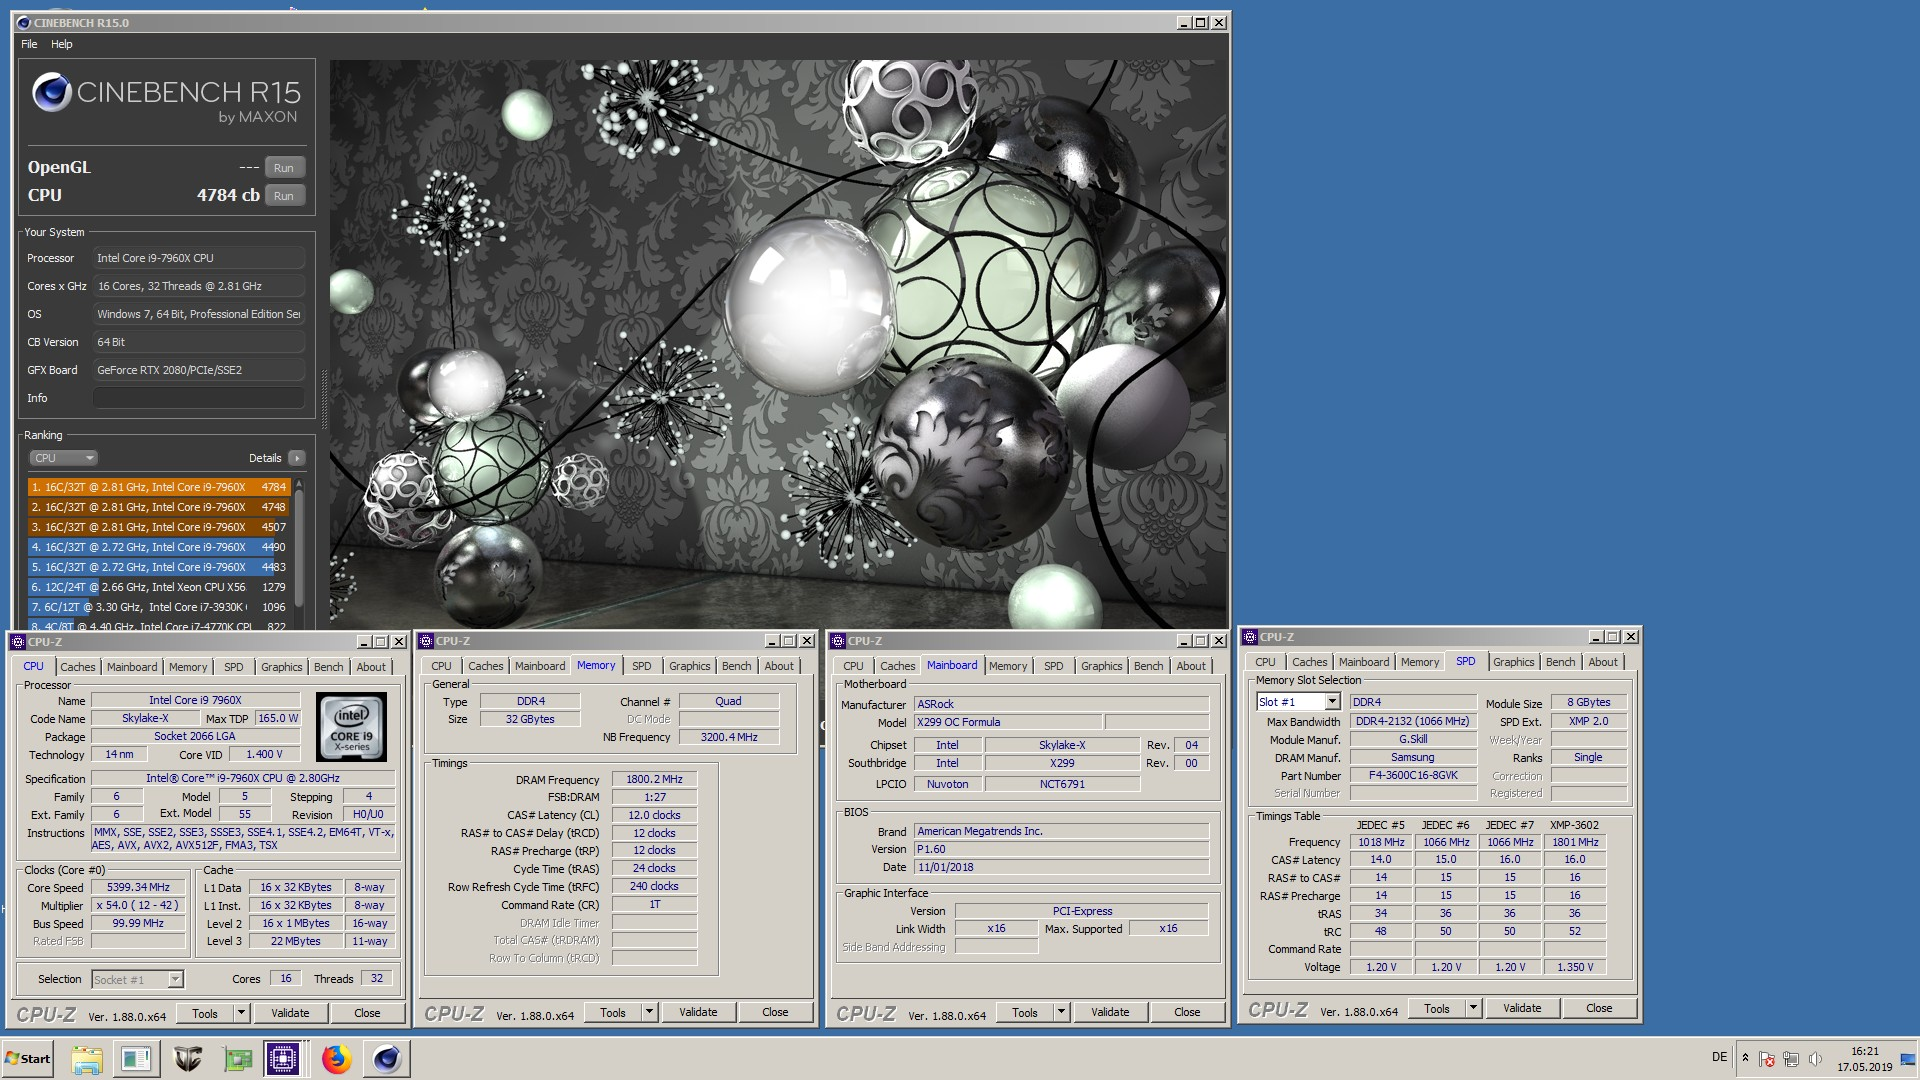 joe_cool`s Cinebench - R15 score: 4784 cb with a Core i9 7960X